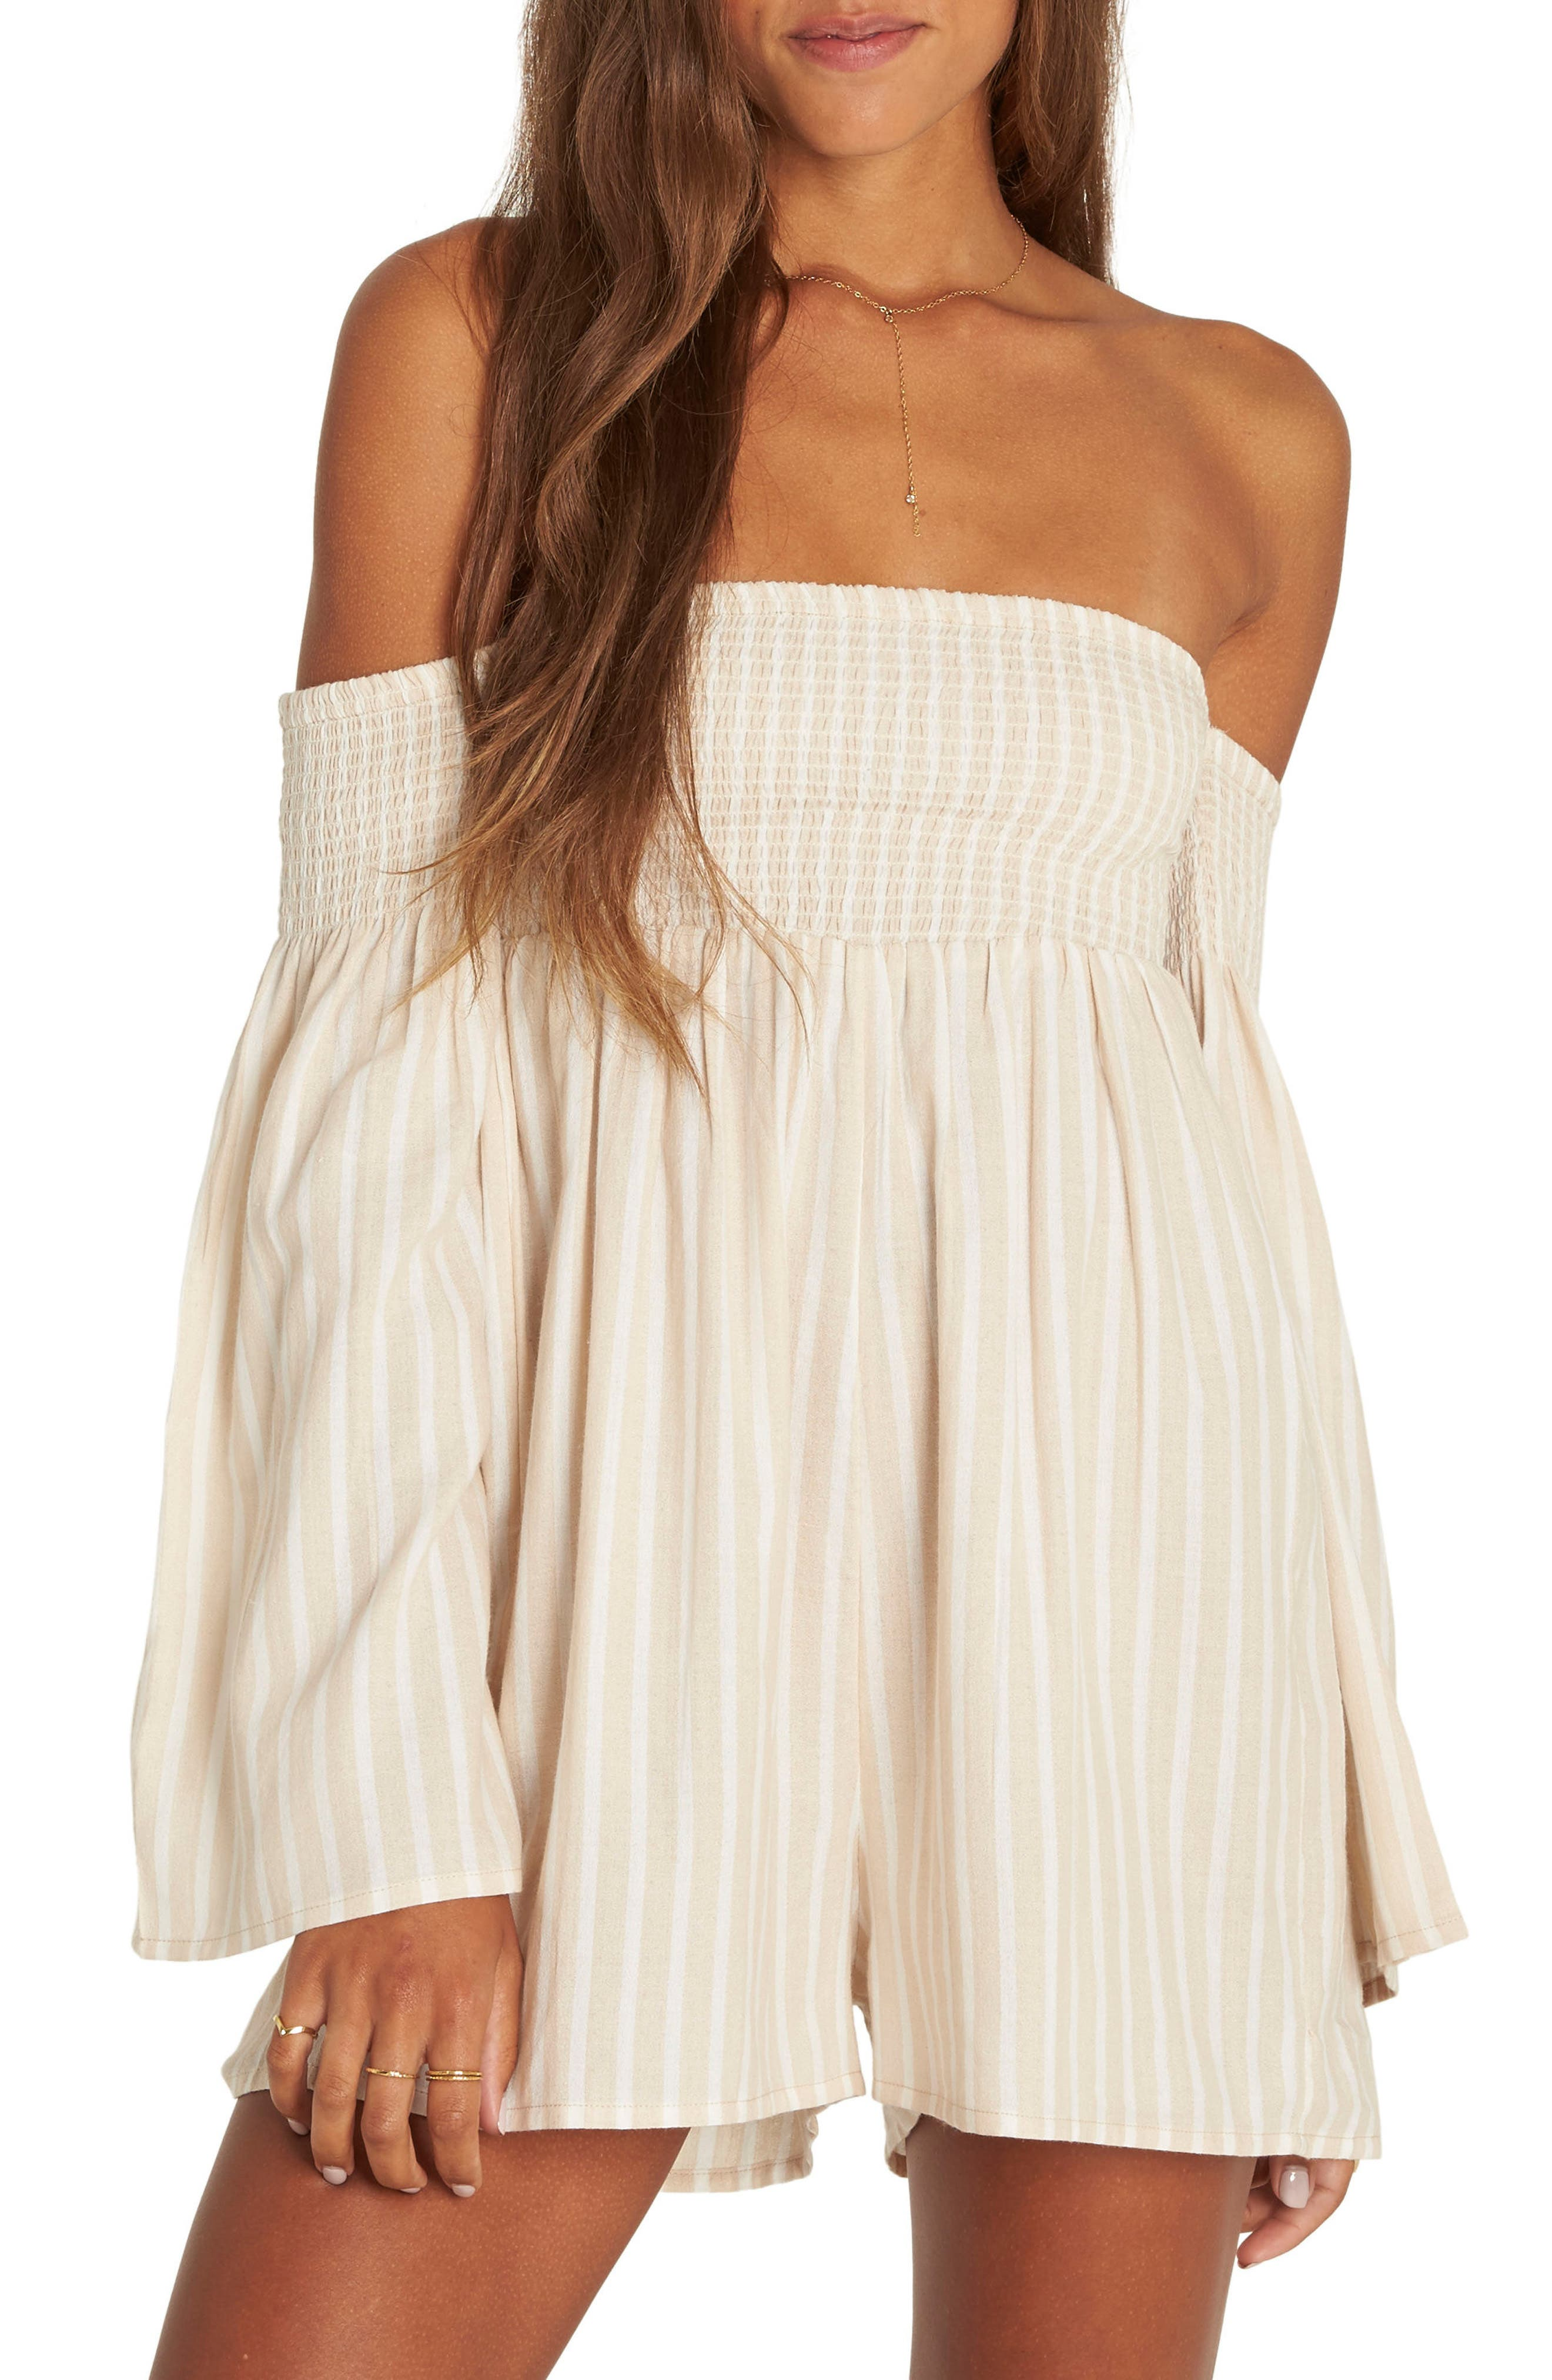 Fox on the Run Off the Shoulder Romper,                             Main thumbnail 1, color,                             250